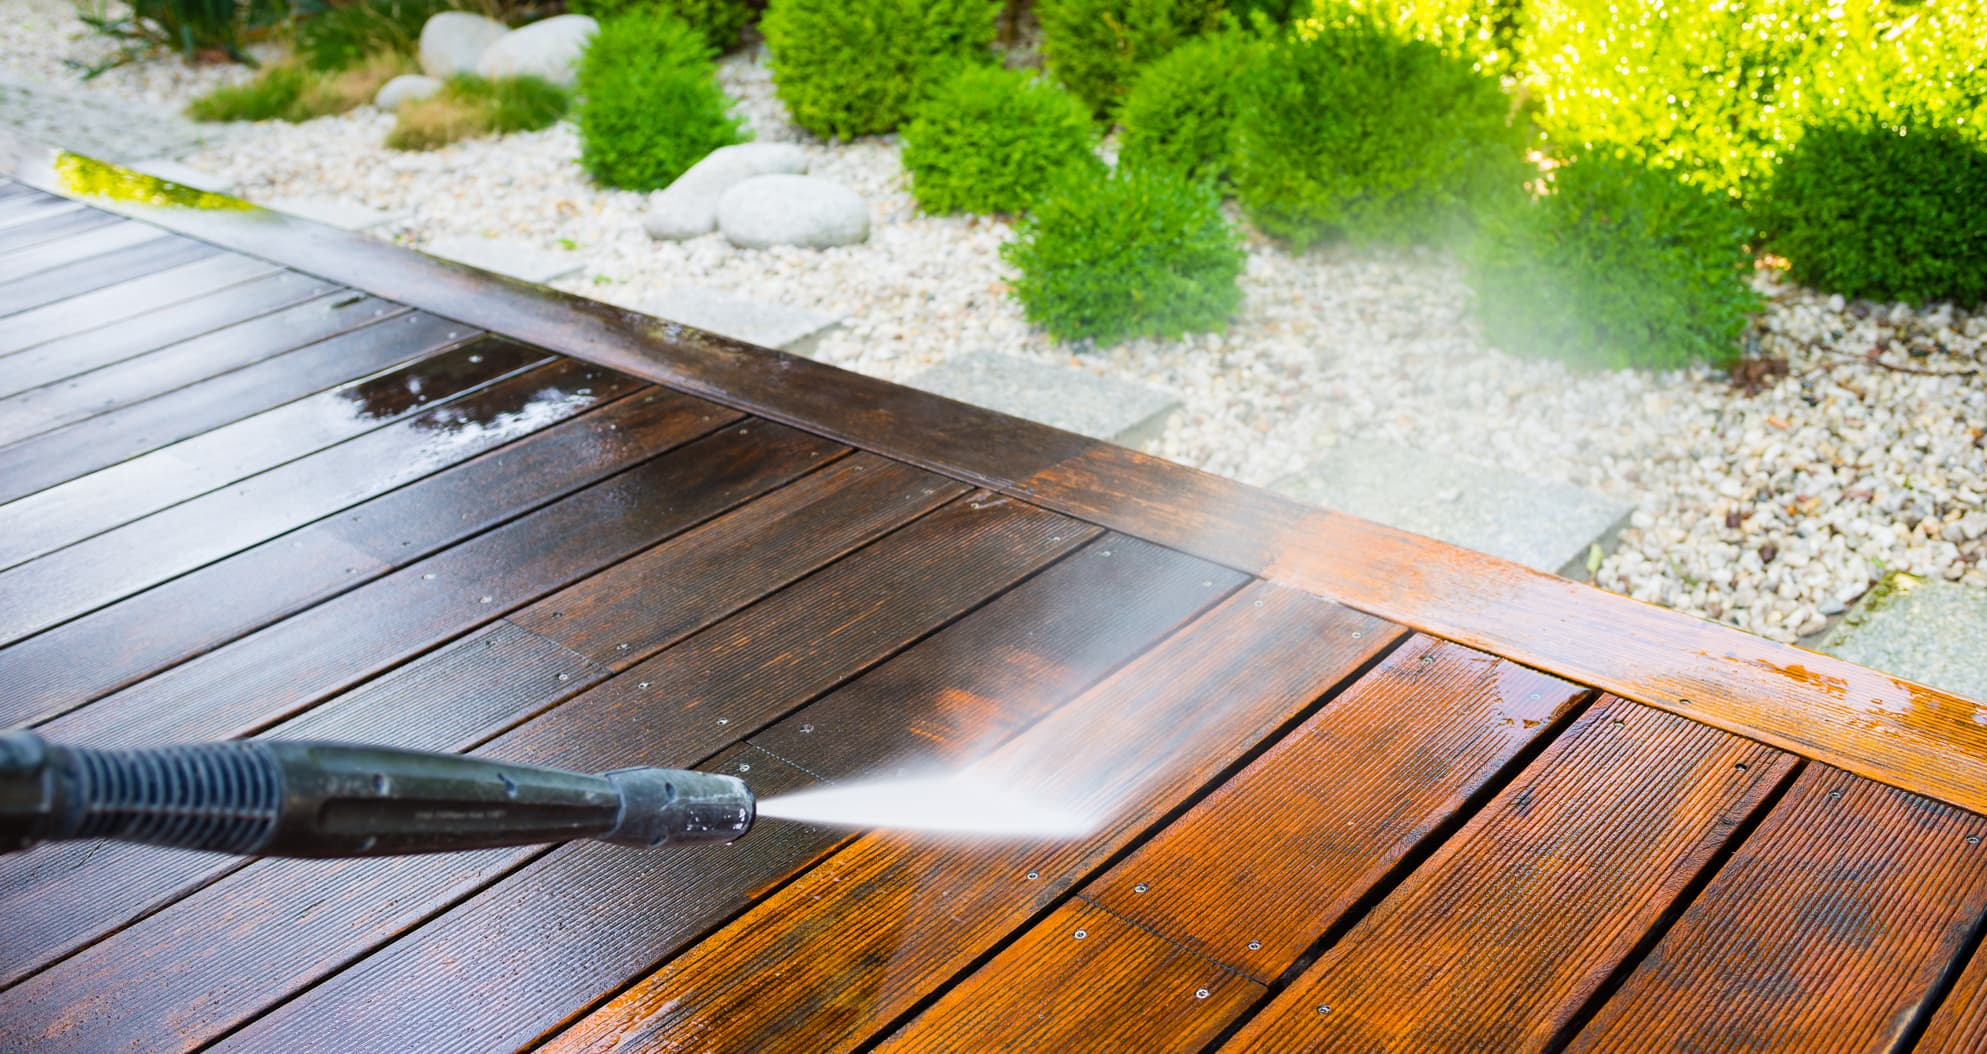 What To Look For When Hiring A Pressure Washer - JB Power Clean